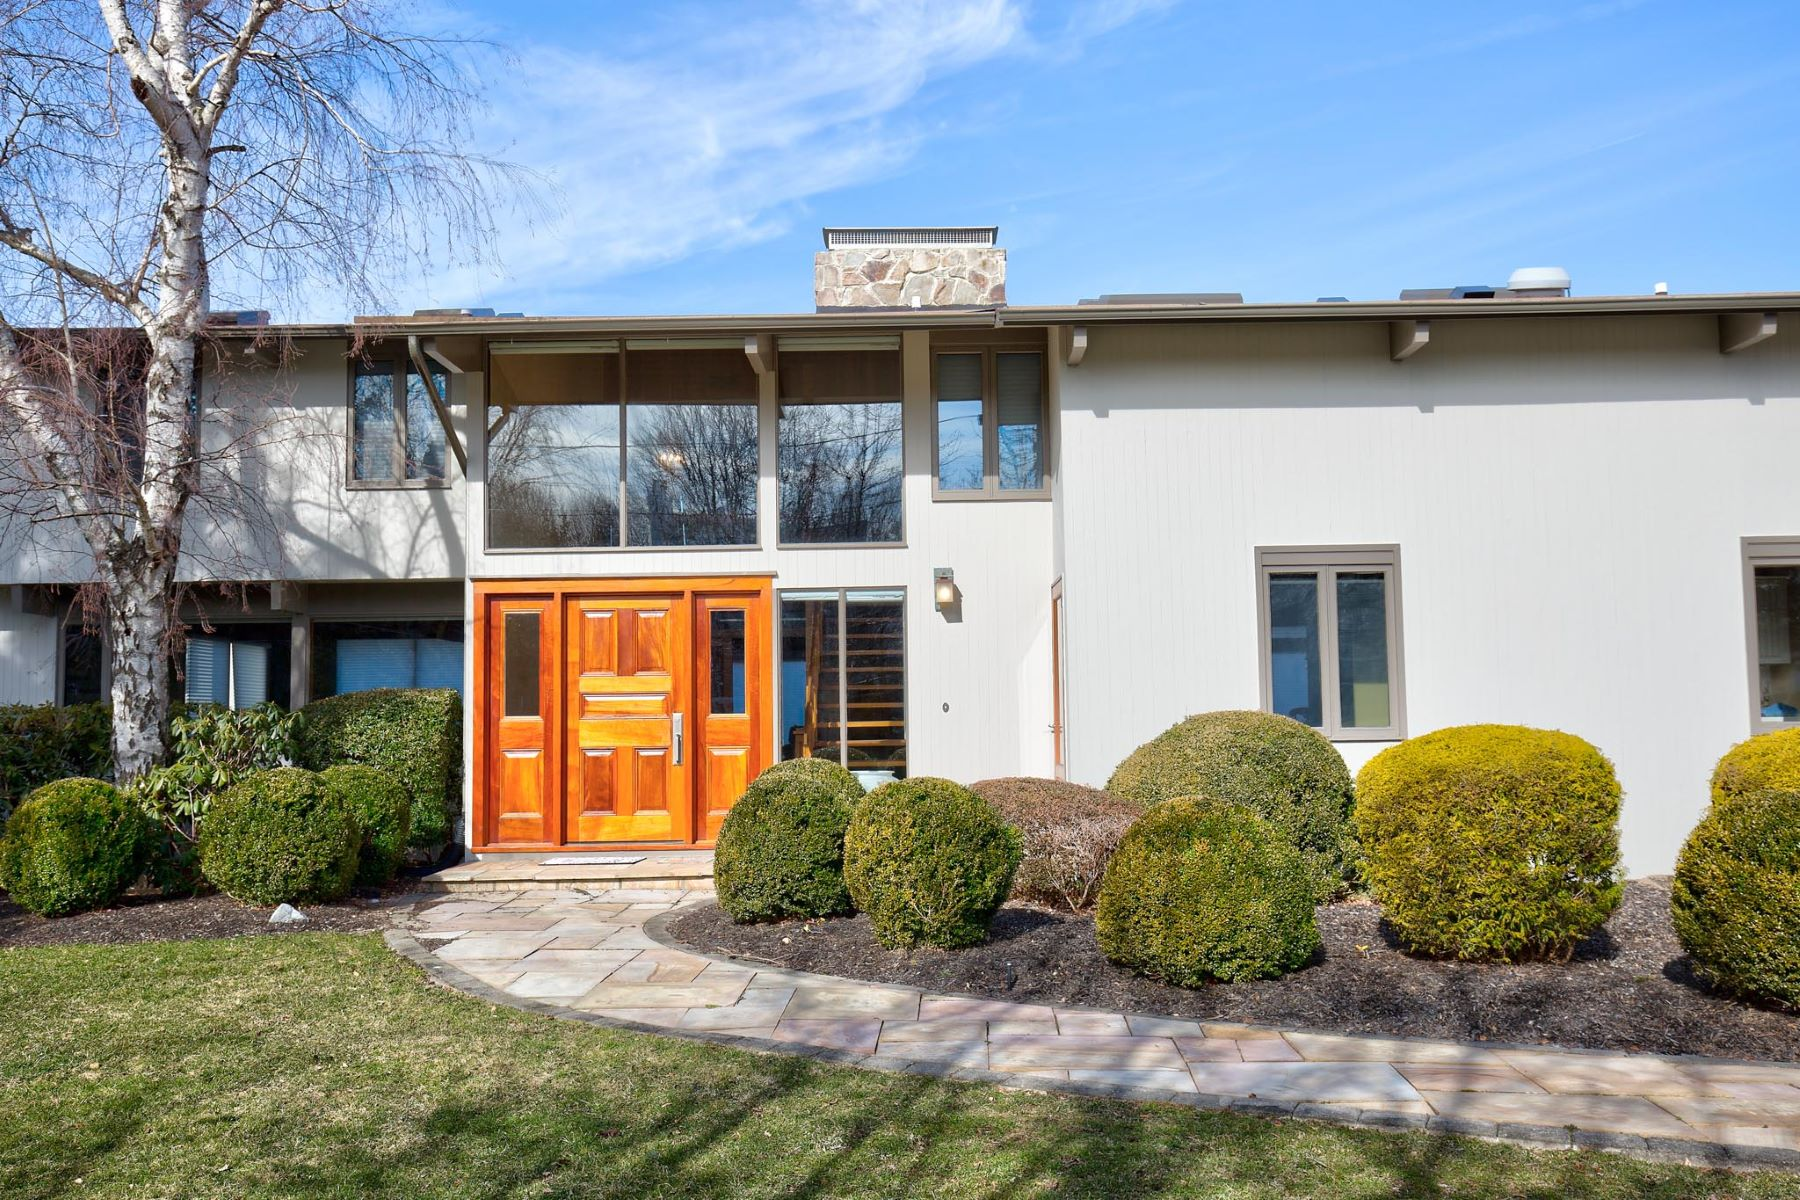 Single Family Home for Sale at 330 Snug Harbor Rd, ,Greenport, New York, 11944 330 Snug Harbor Rd Greenport, New York 11944 United States